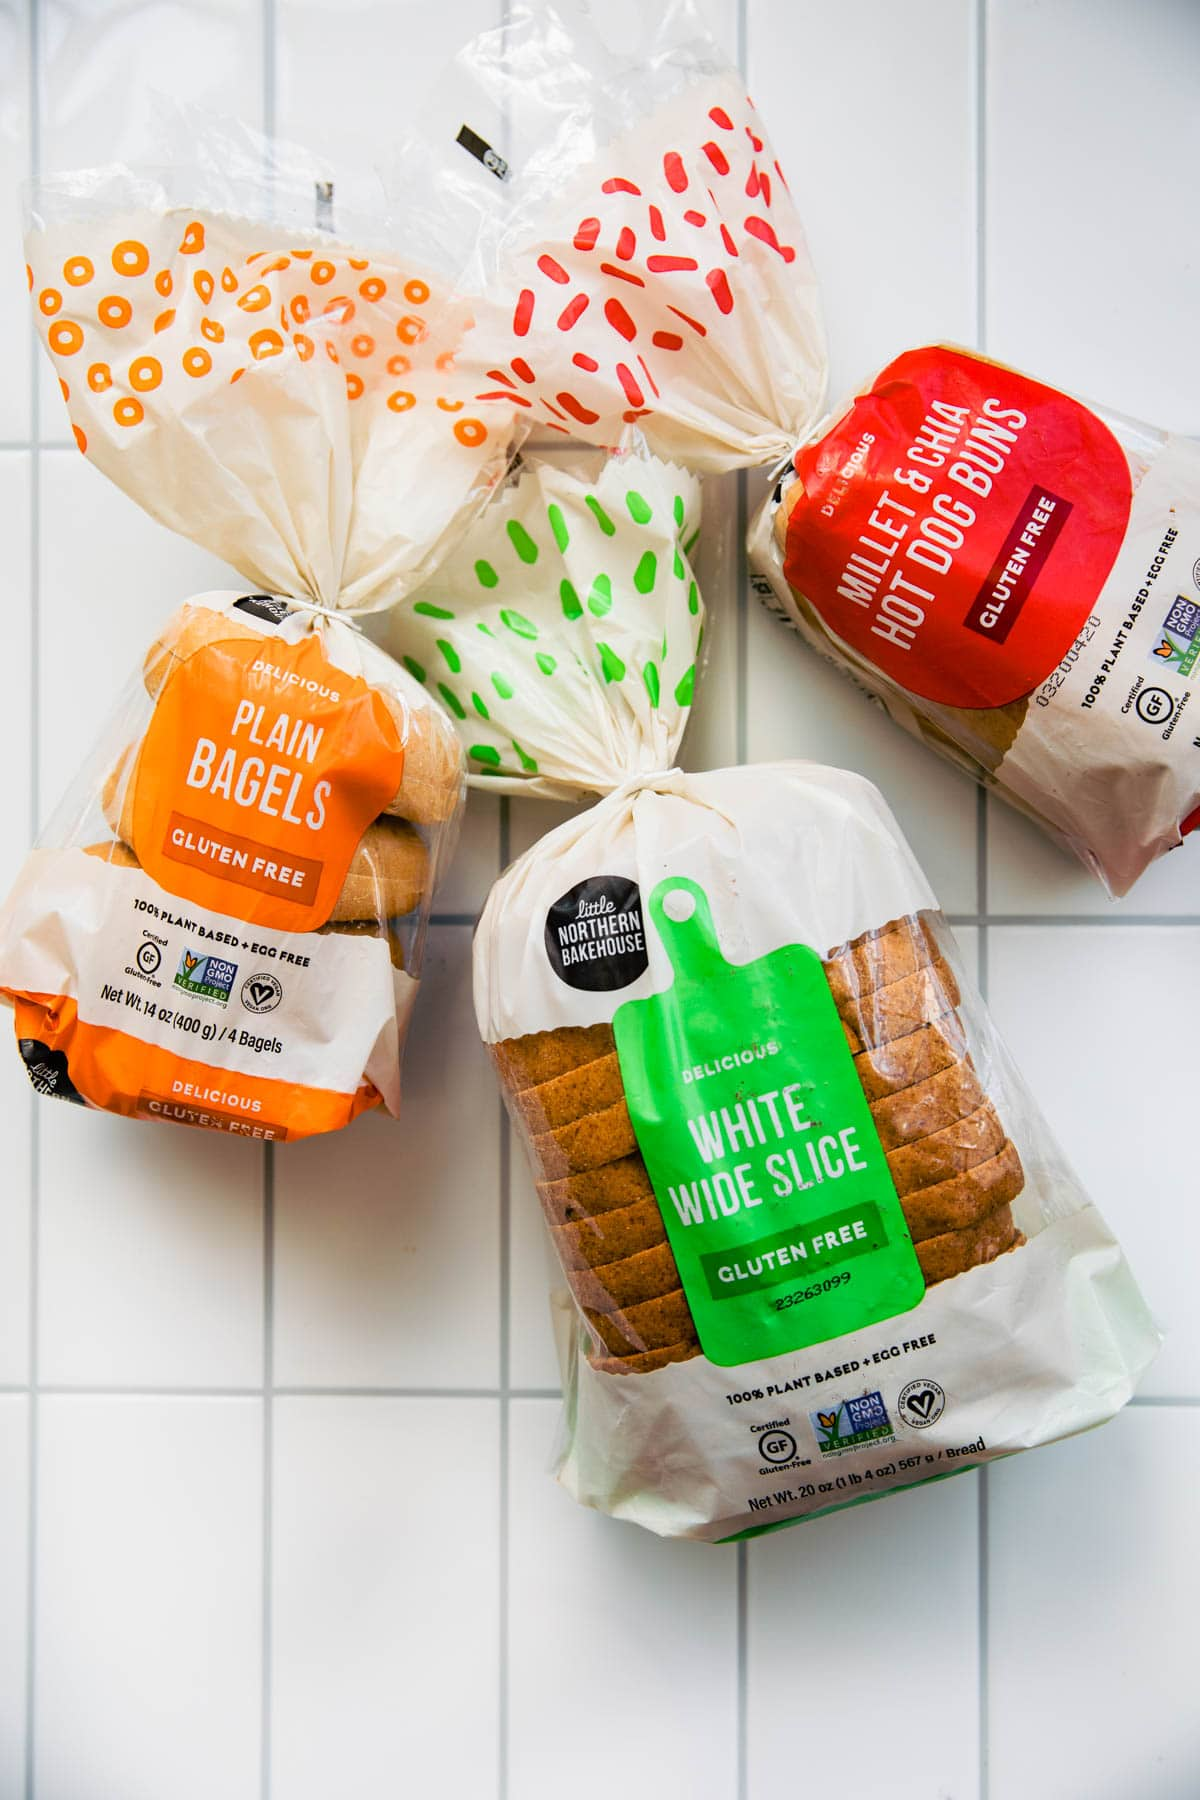 Little Northern Bakery brand bread, bagels, and buns, all in store packaging